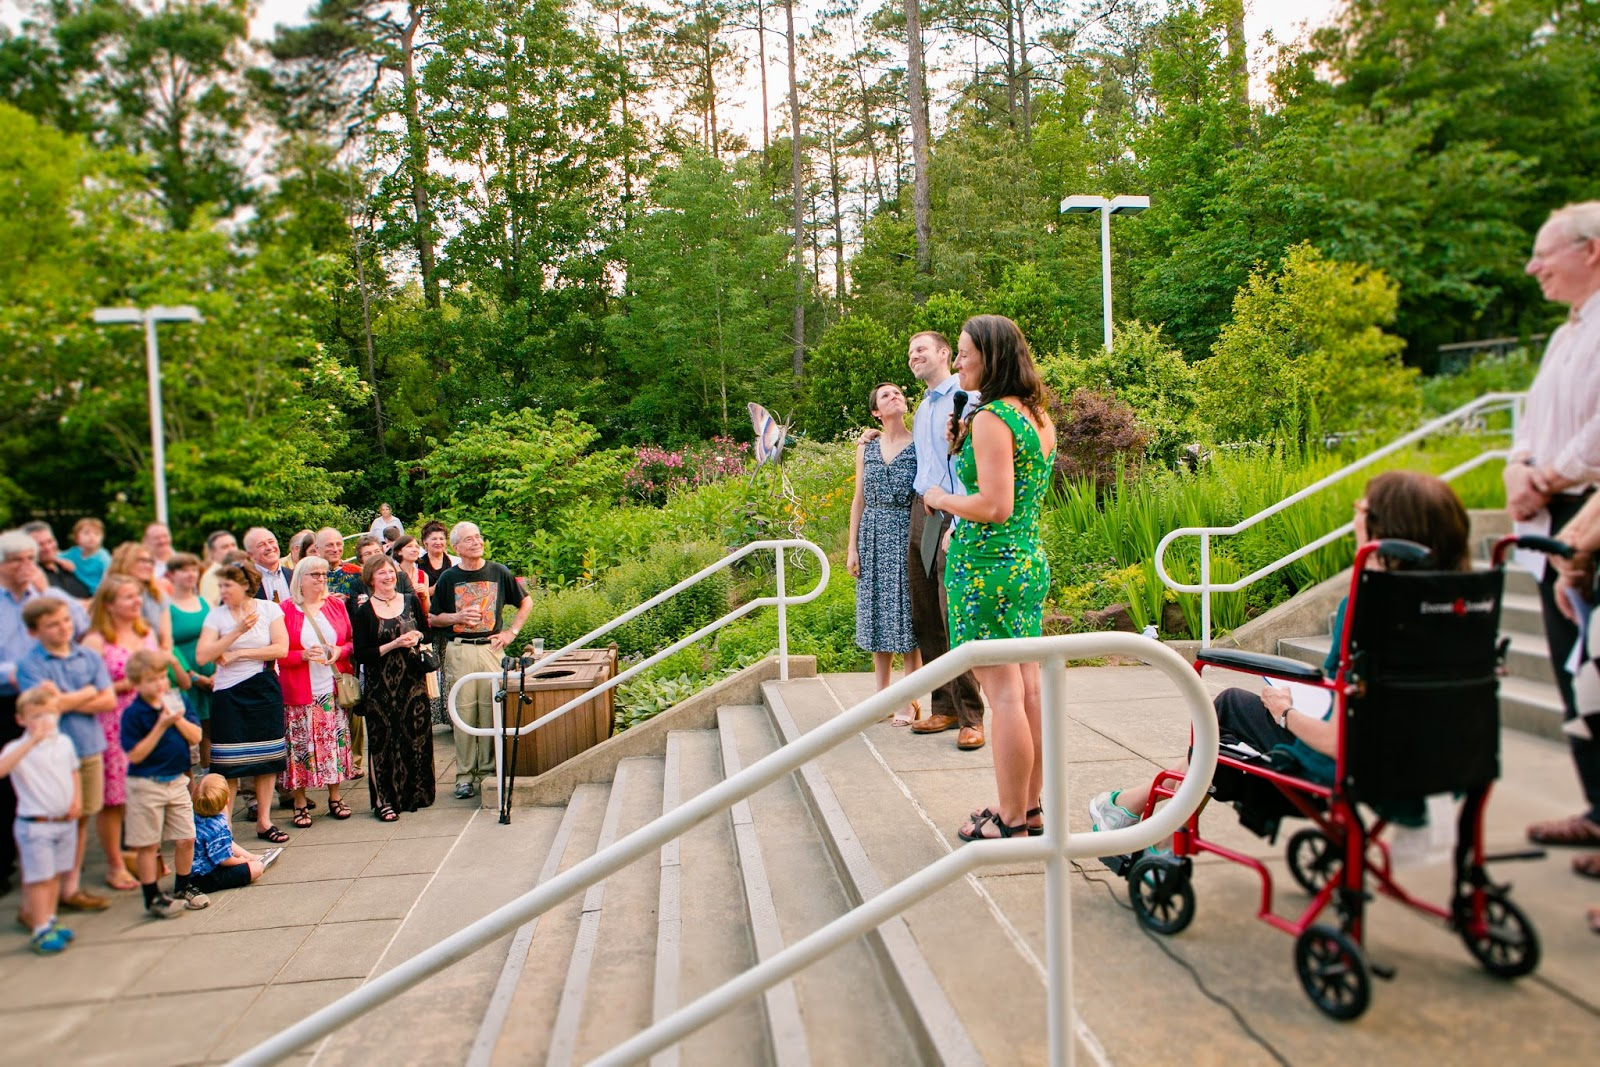 museum of life and science, museum wedding, contemporary wedding, greenhouse wedding, butterfly house, wedding photographers, wedding photography, wedding reception, train ride